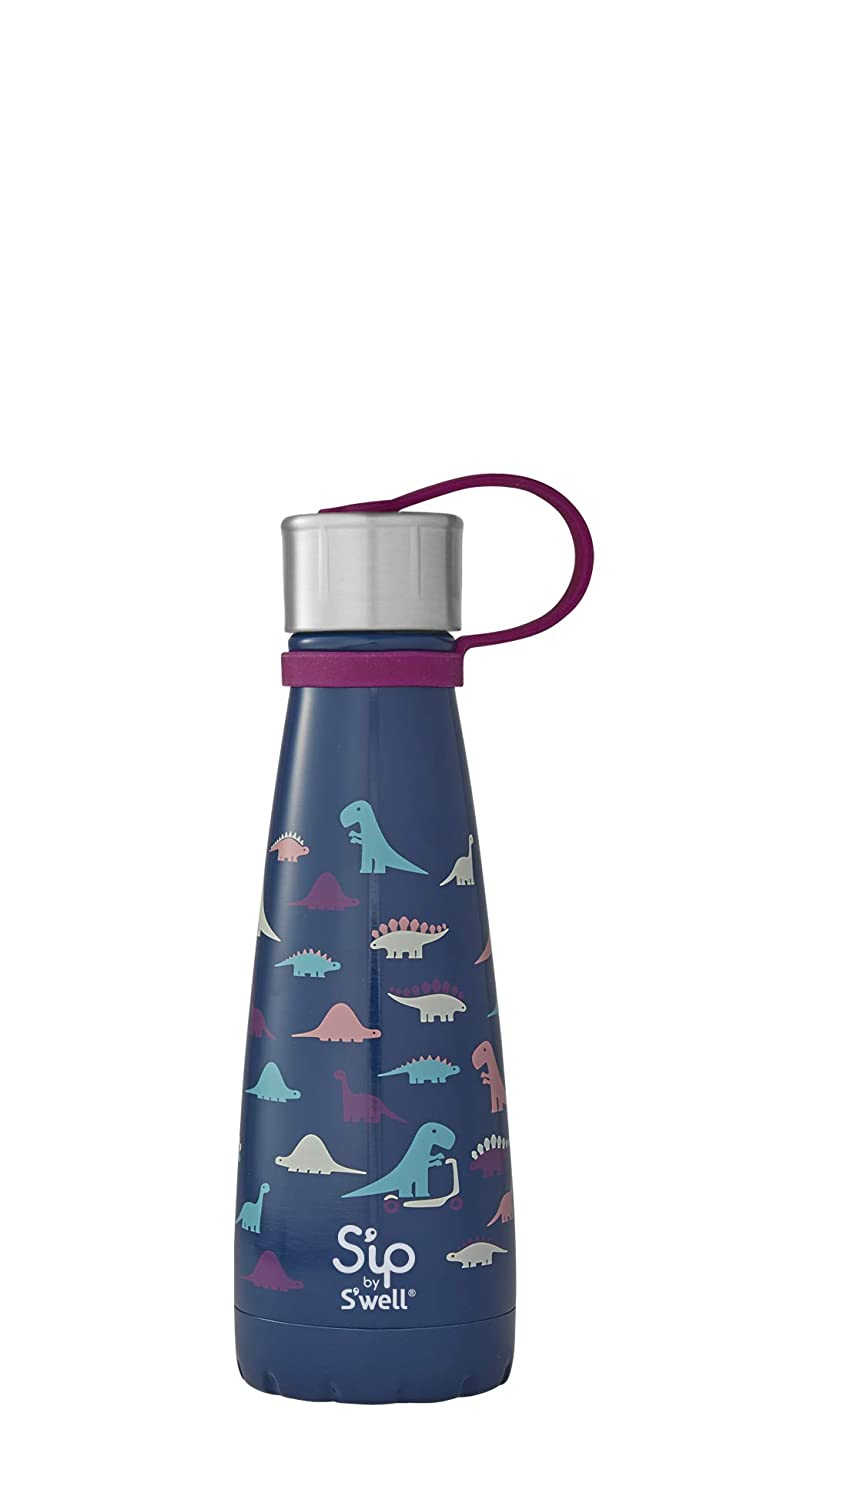 S'ip by S'well 20010-B18-07340 Water Bottle, 10 oz, Little Lions S'ip by S'well